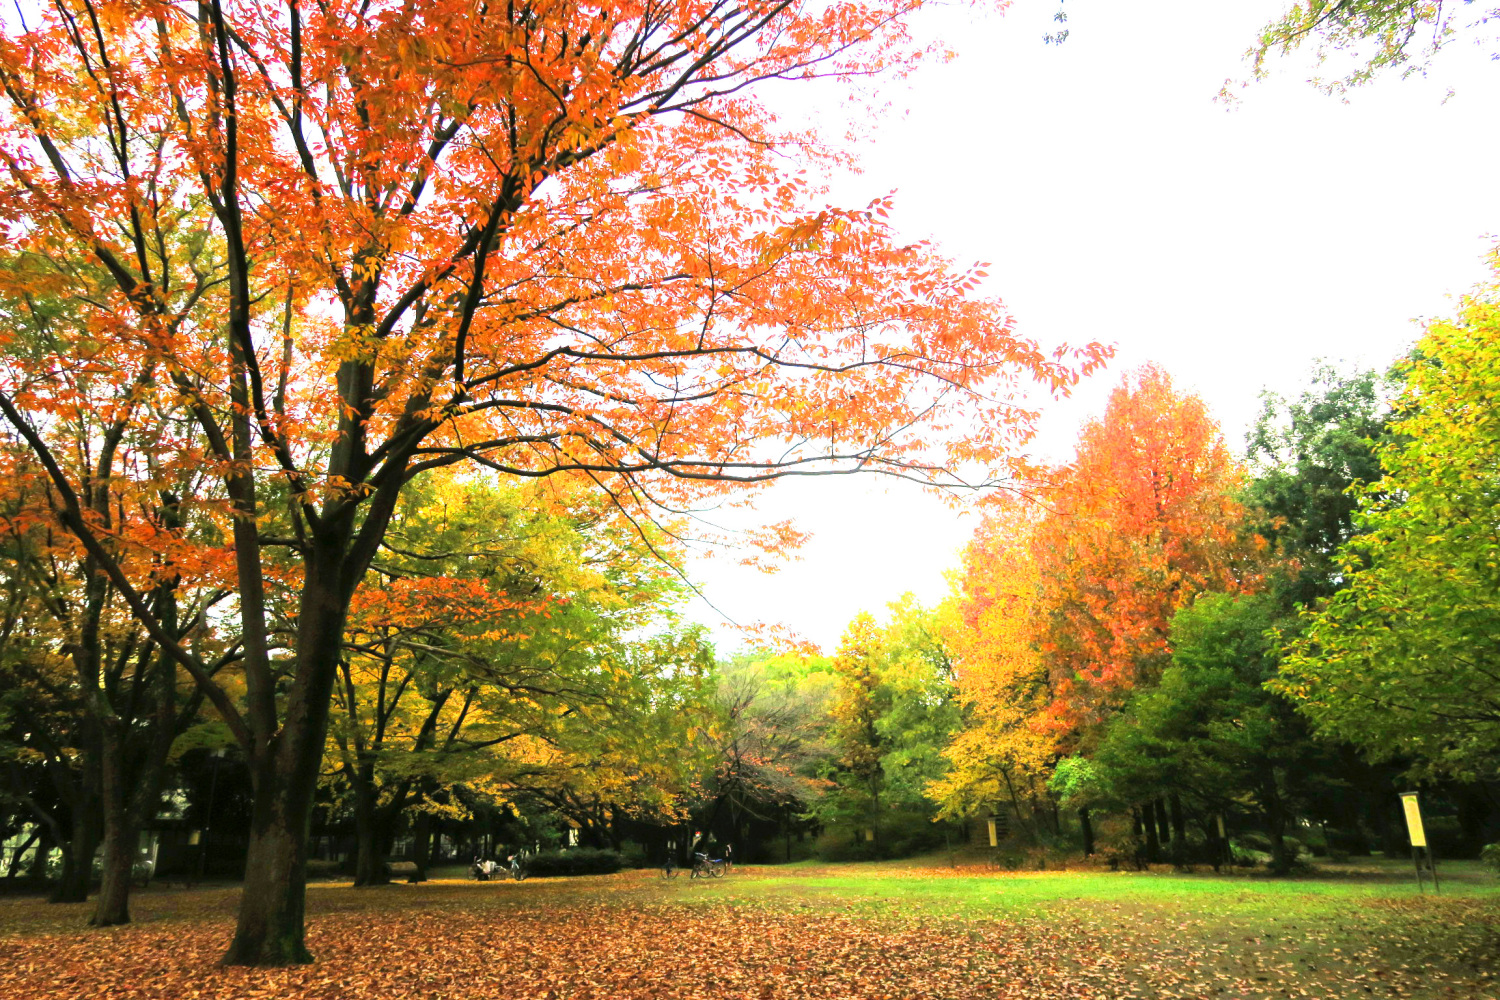 Colored leaves image of Kaori Park of the four seasons